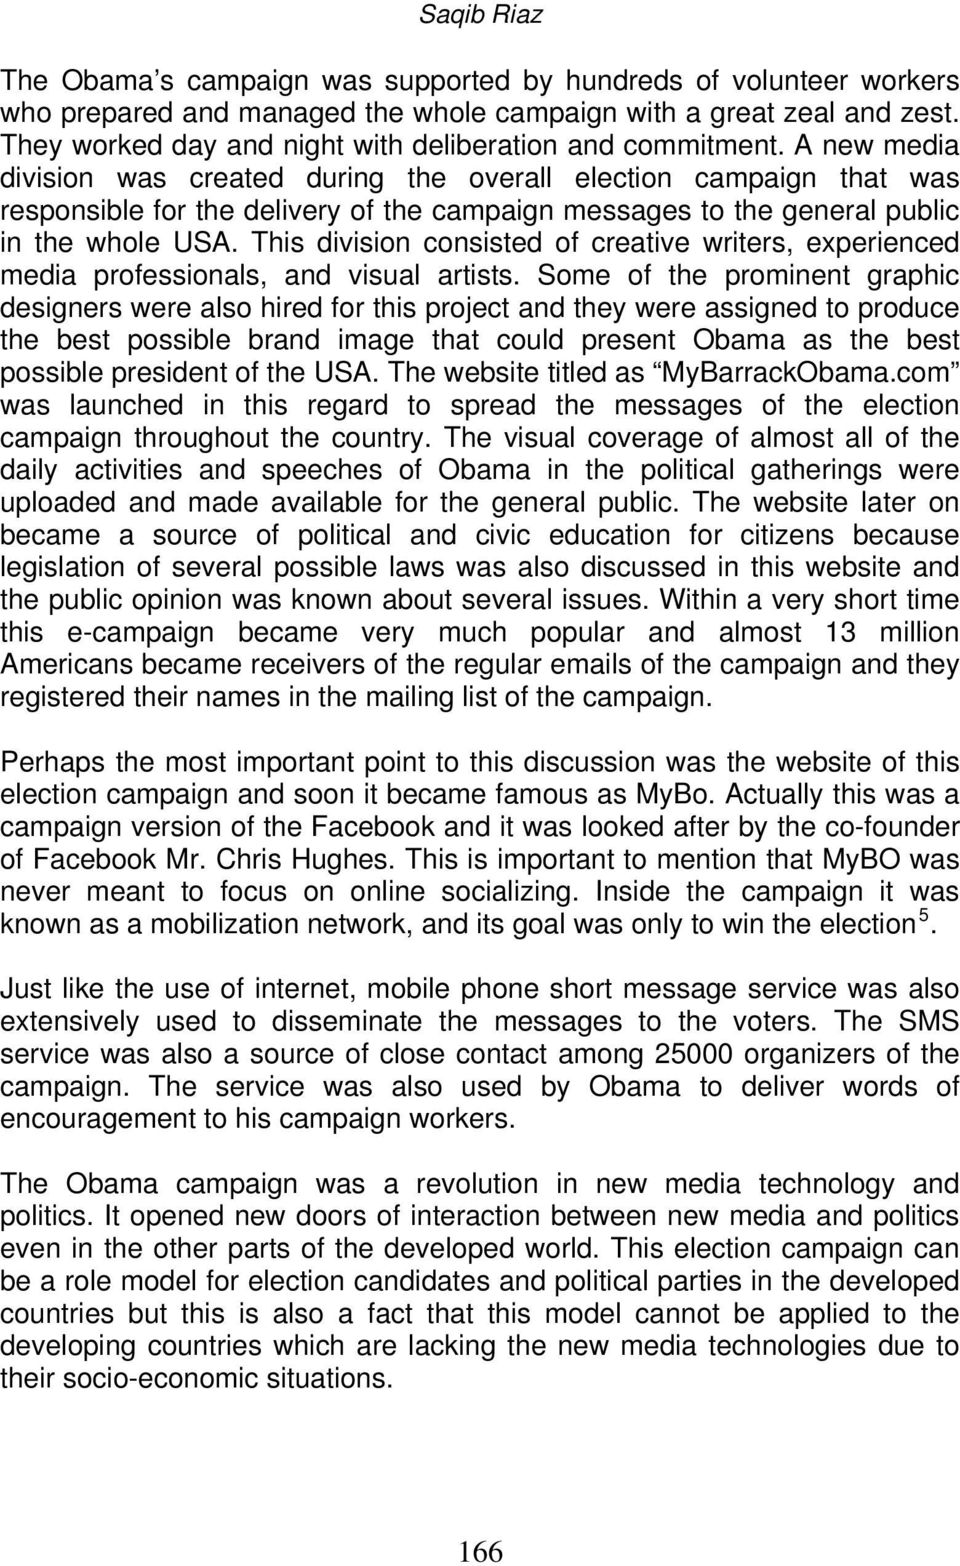 A new media division was created during the overall election campaign that was responsible for the delivery of the campaign messages to the general public in the whole USA.